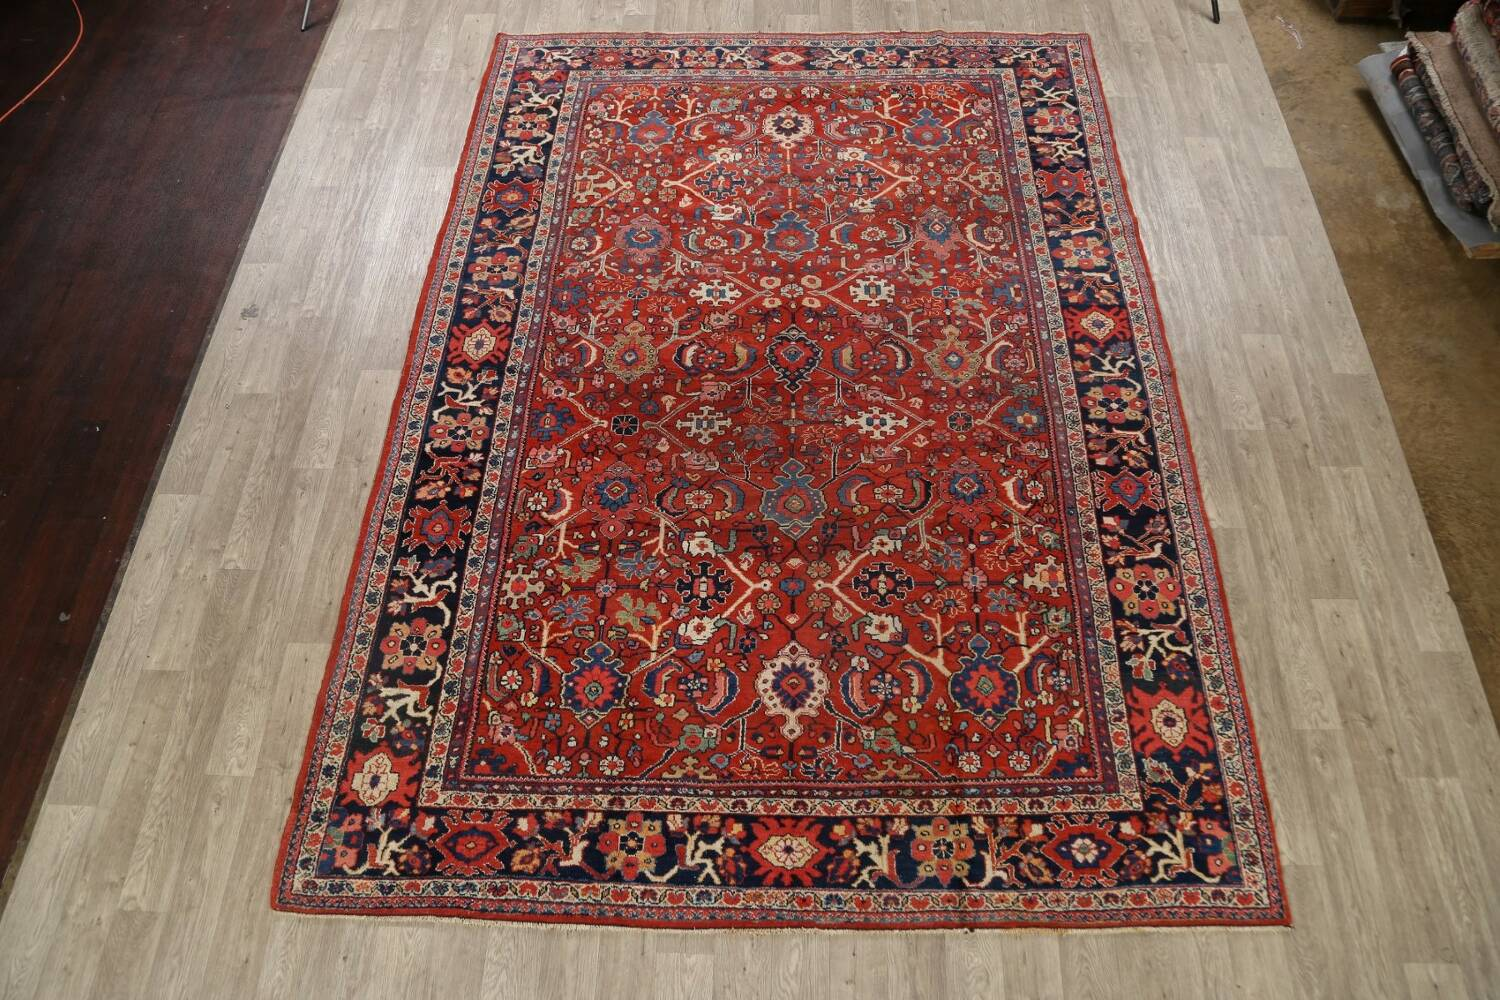 Antique Vegetable Dye Sultanabad Persian Area Rug 9x12 image 2